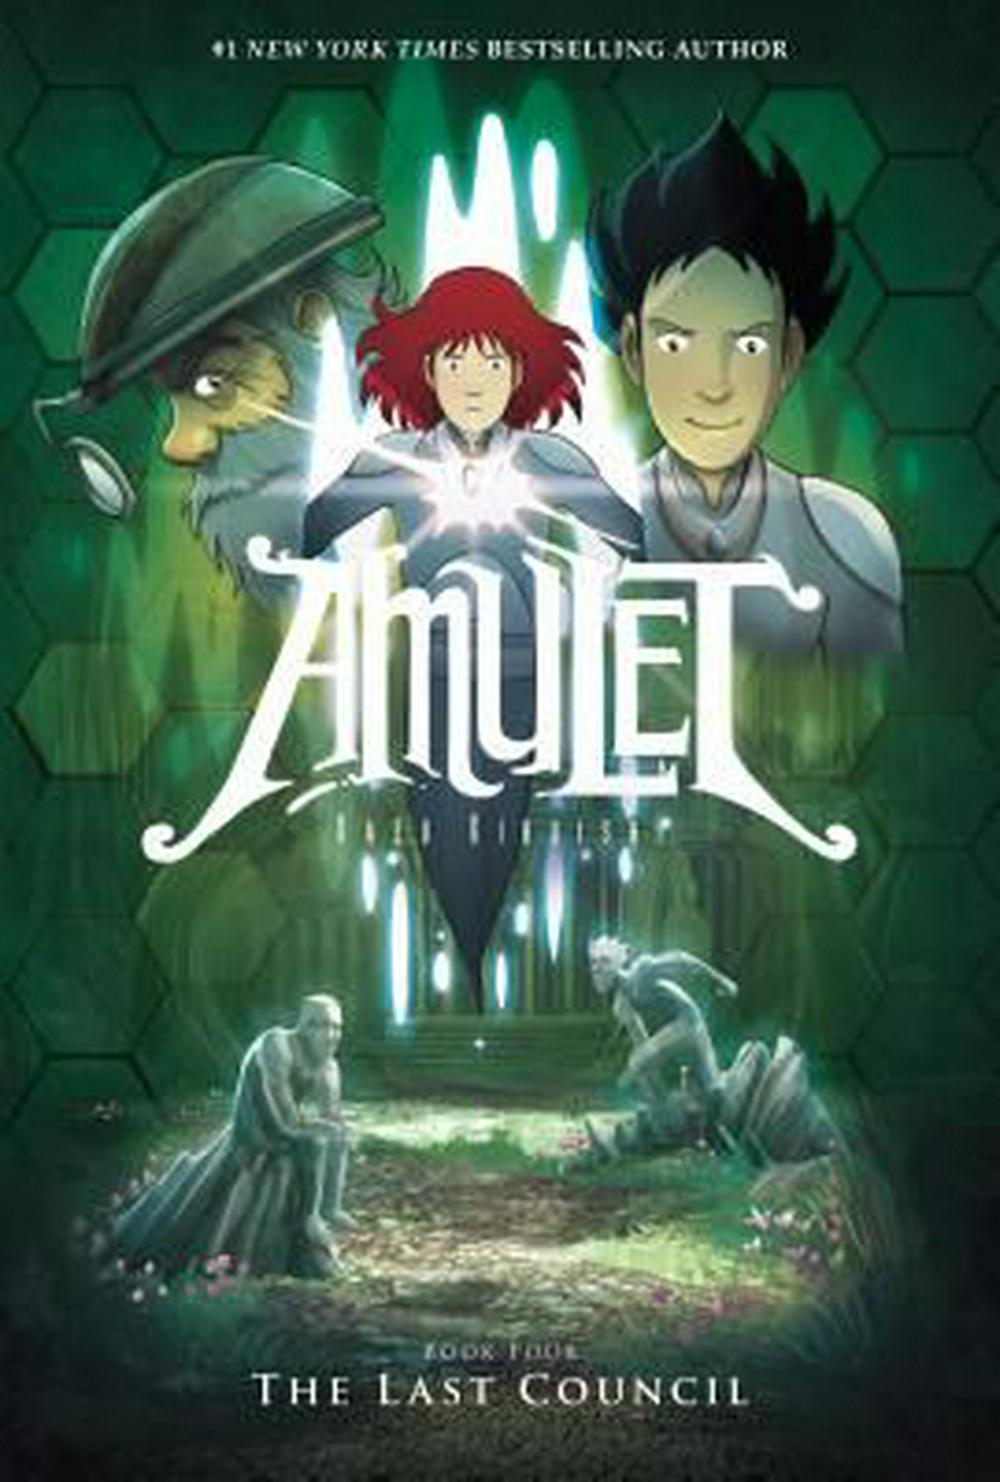 The Last Council (Amulet #4)Amulet (Hardcover)